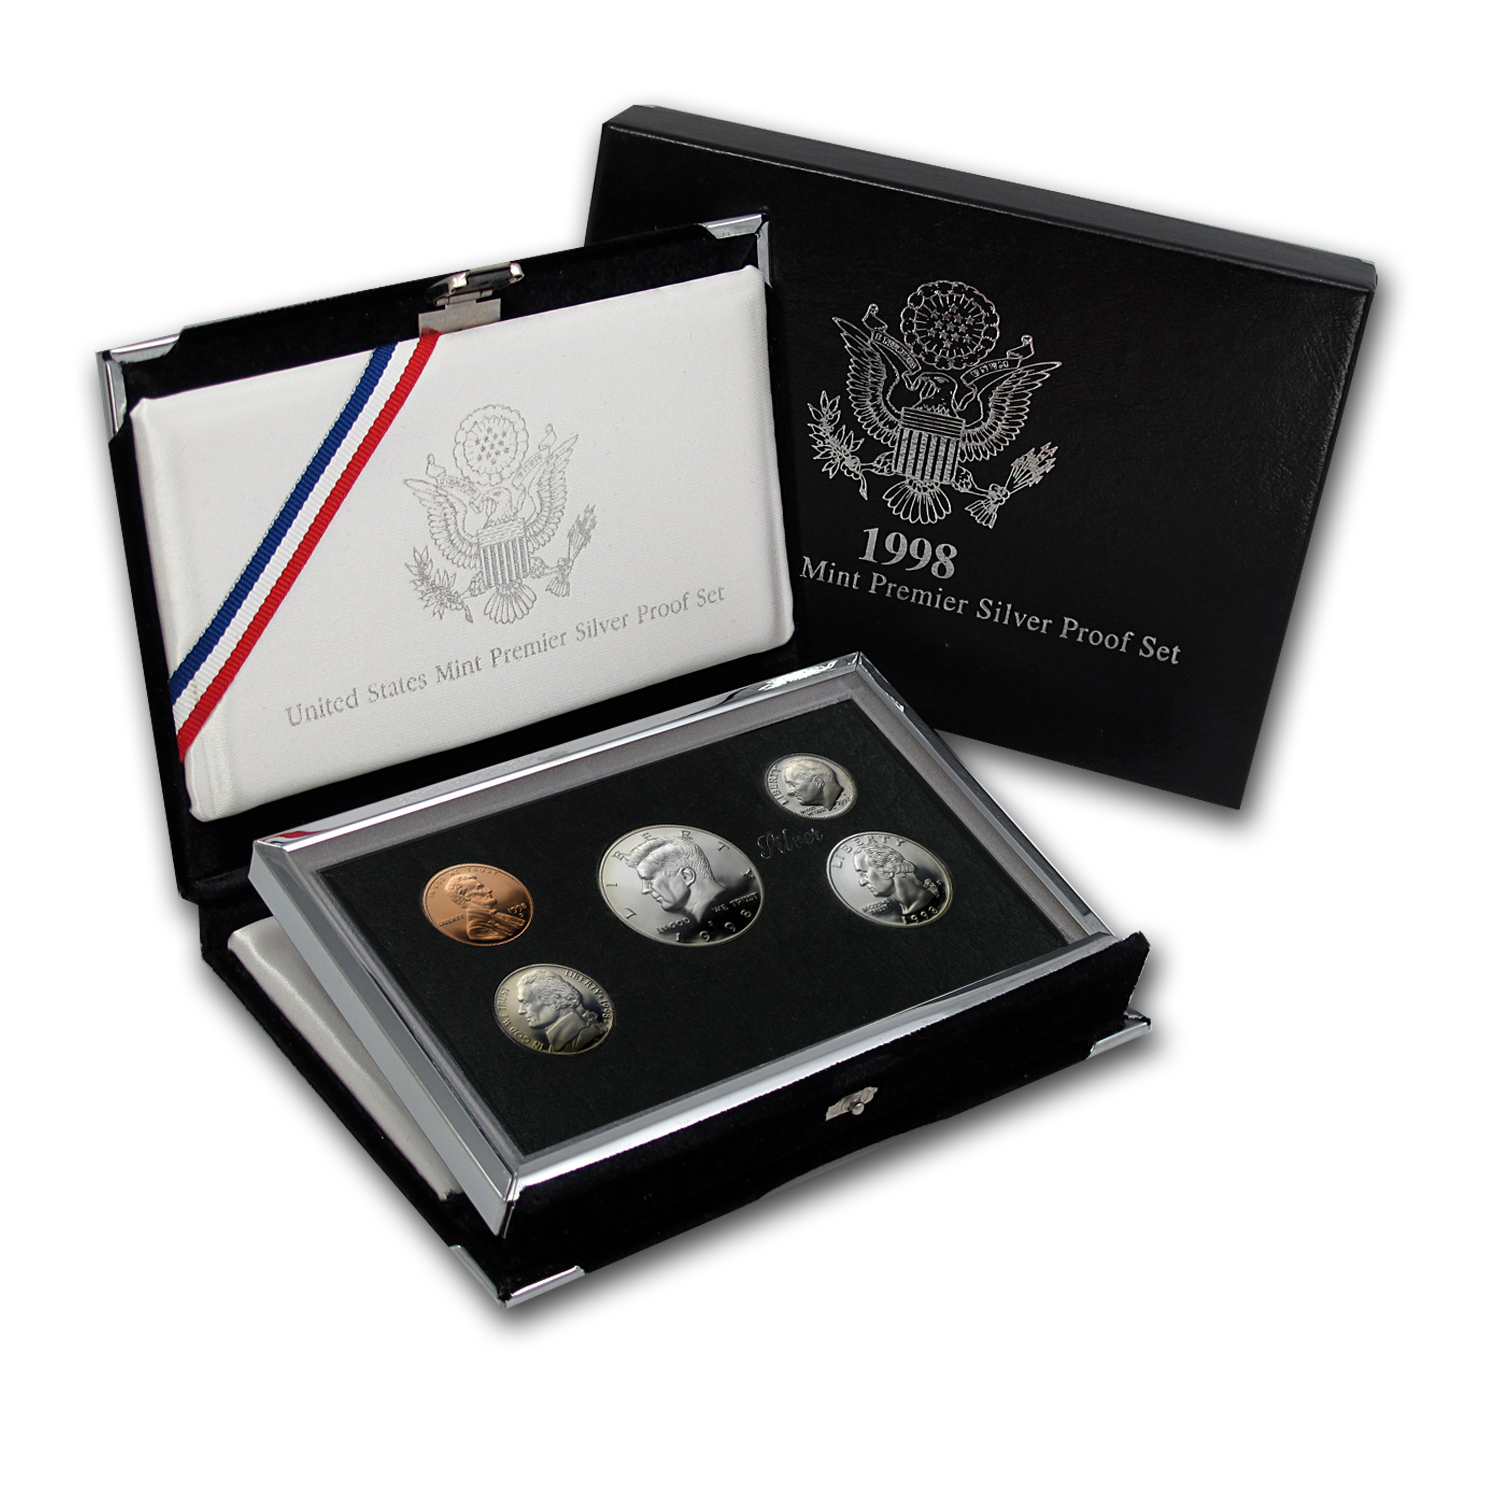 1998 Premier Silver Proof Set